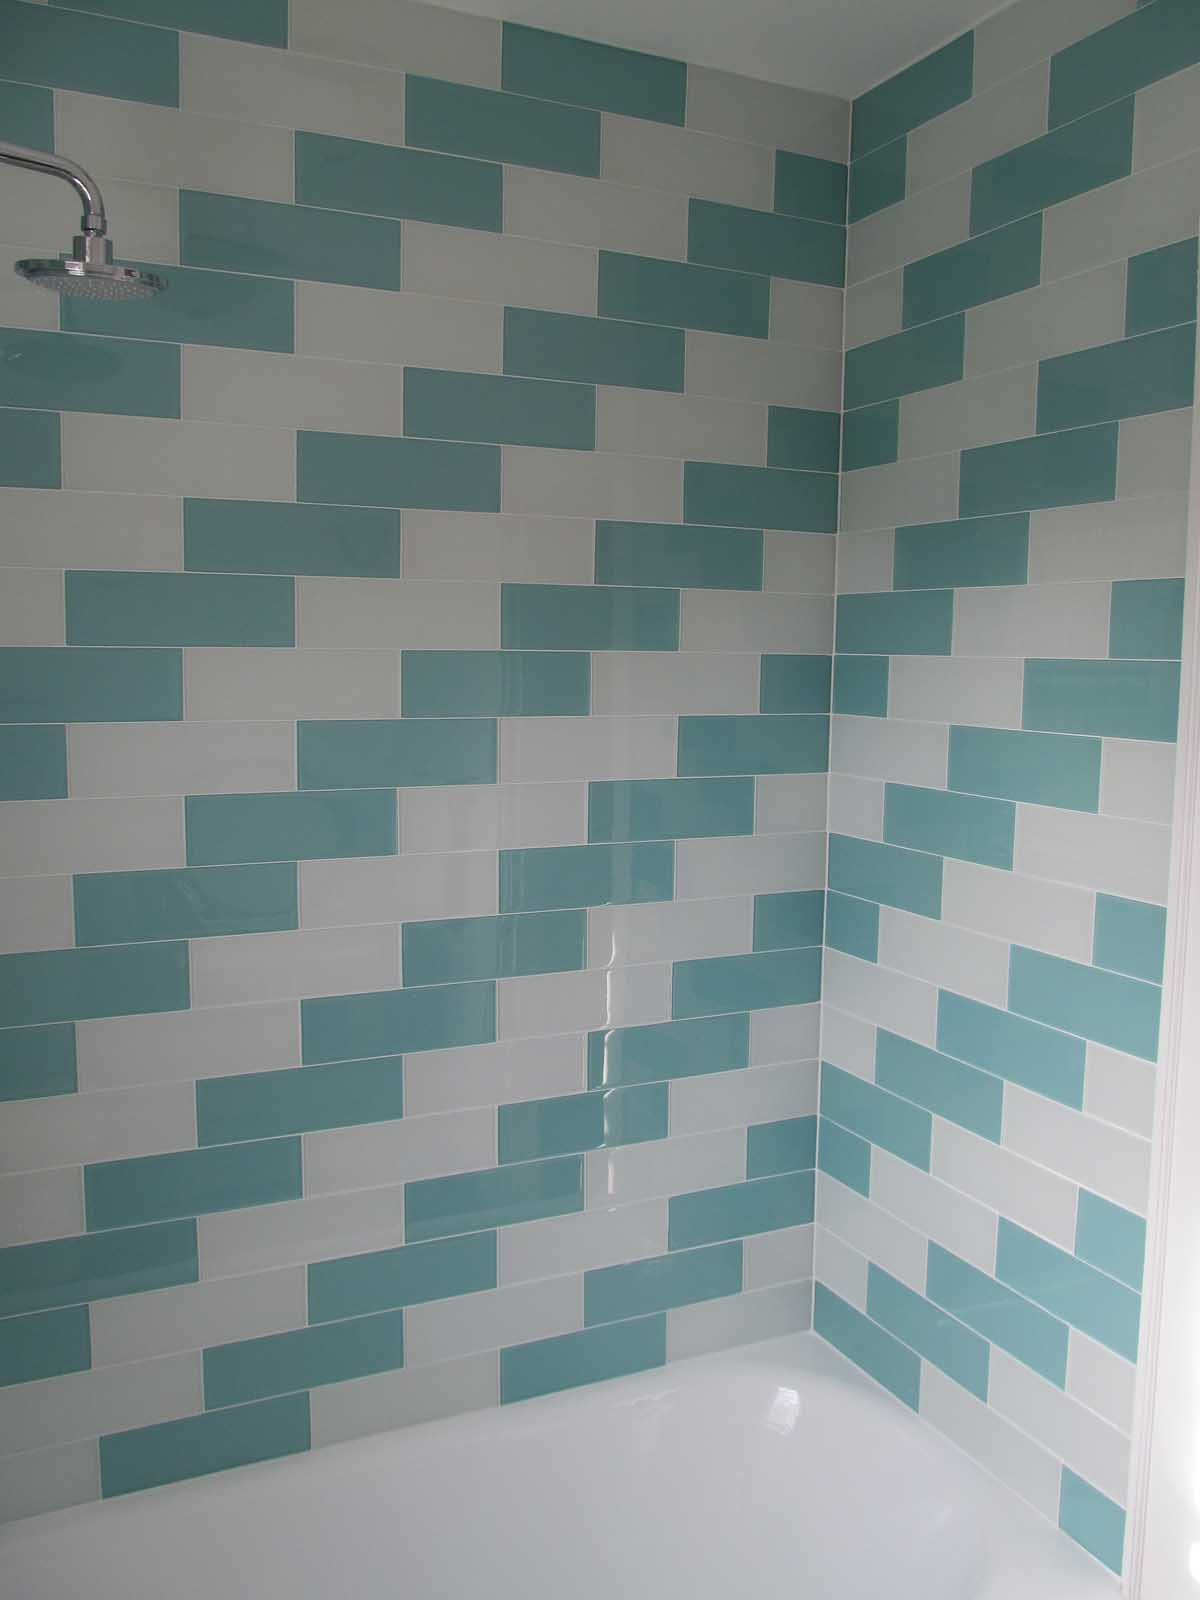 Herringbone Tile Detail After Bathroom Renovation at Summit Ave. Brookline 2